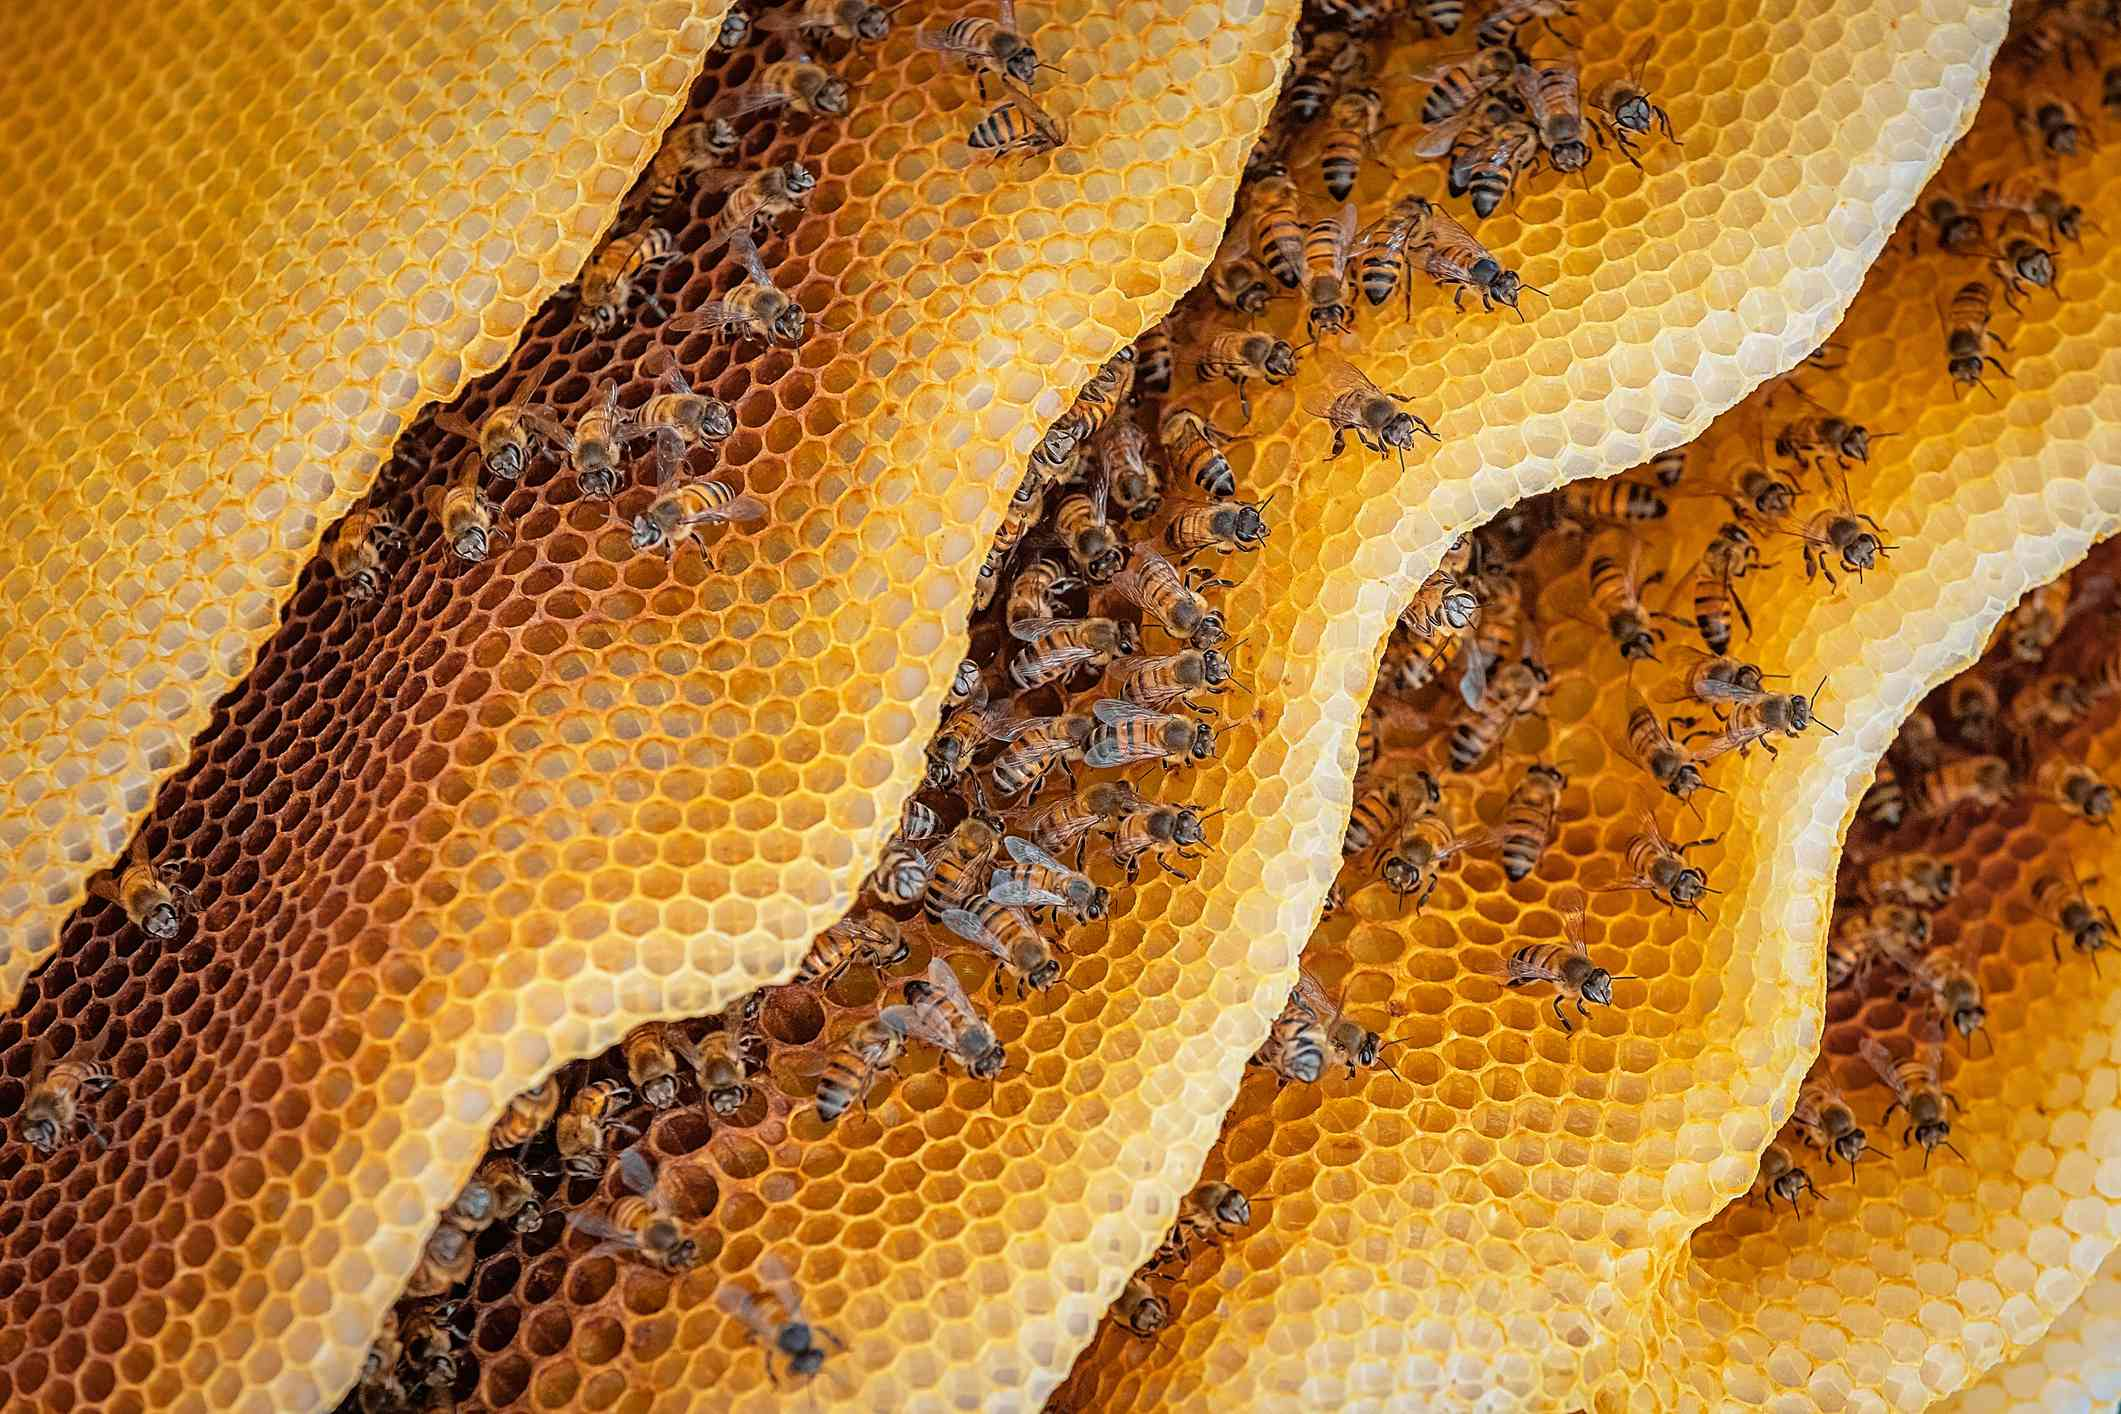 Close up of honey bee colony in a hive